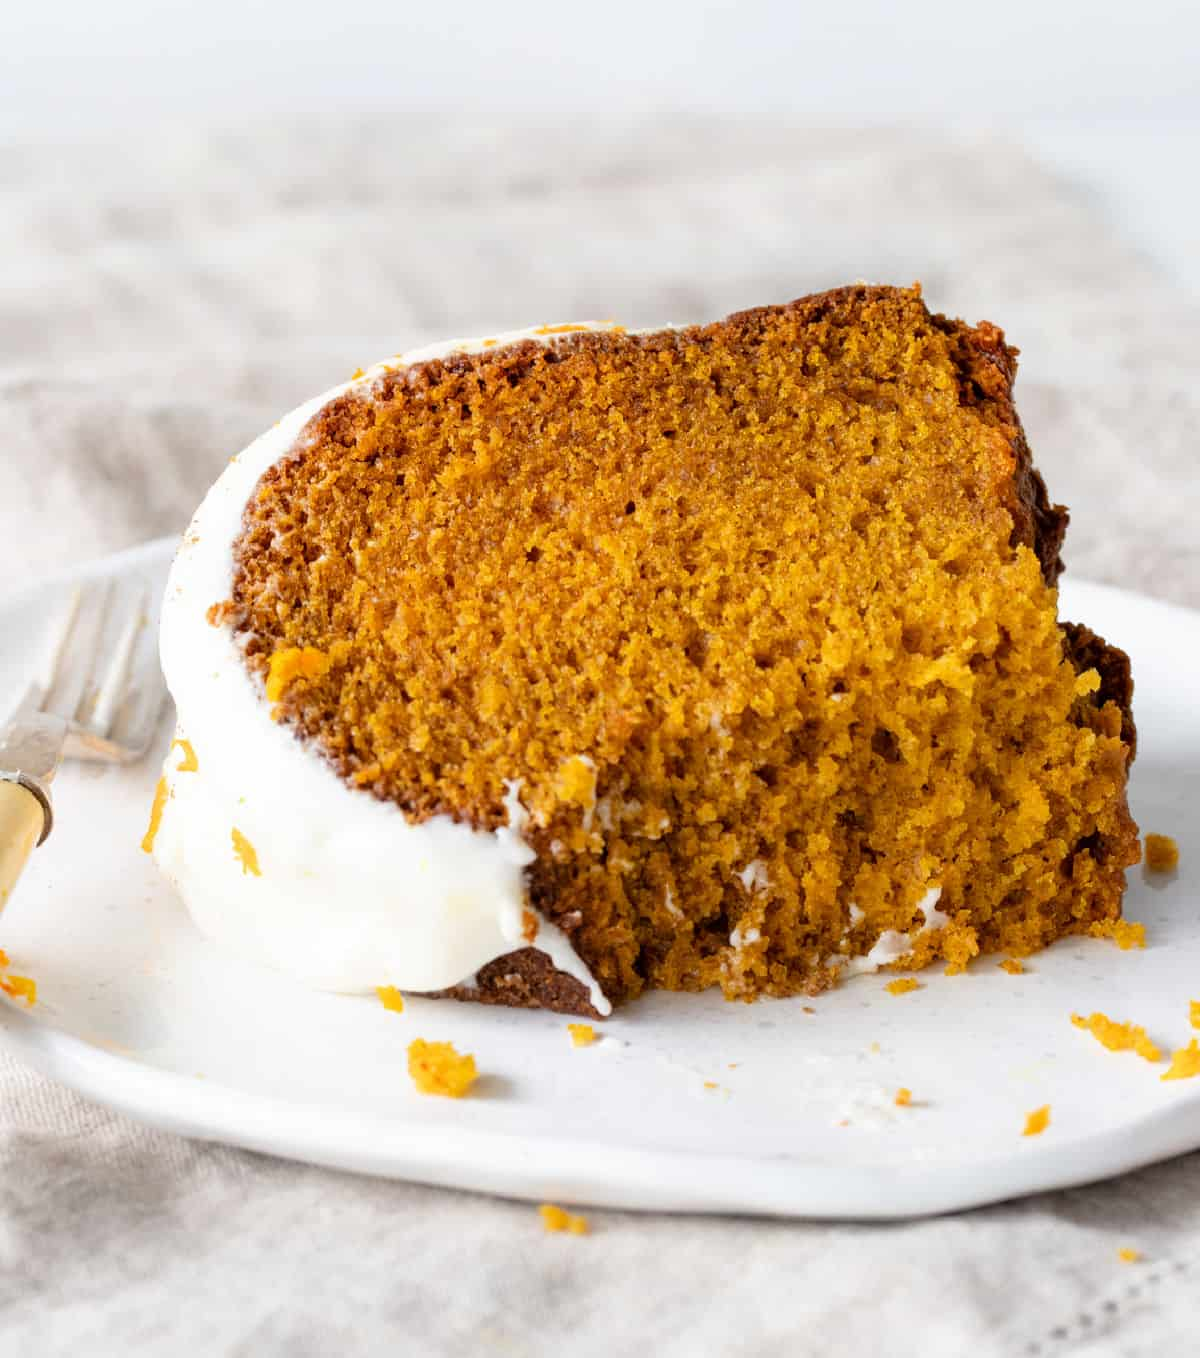 Eaten slice of frosted pumpkin cake on white plate, grey background